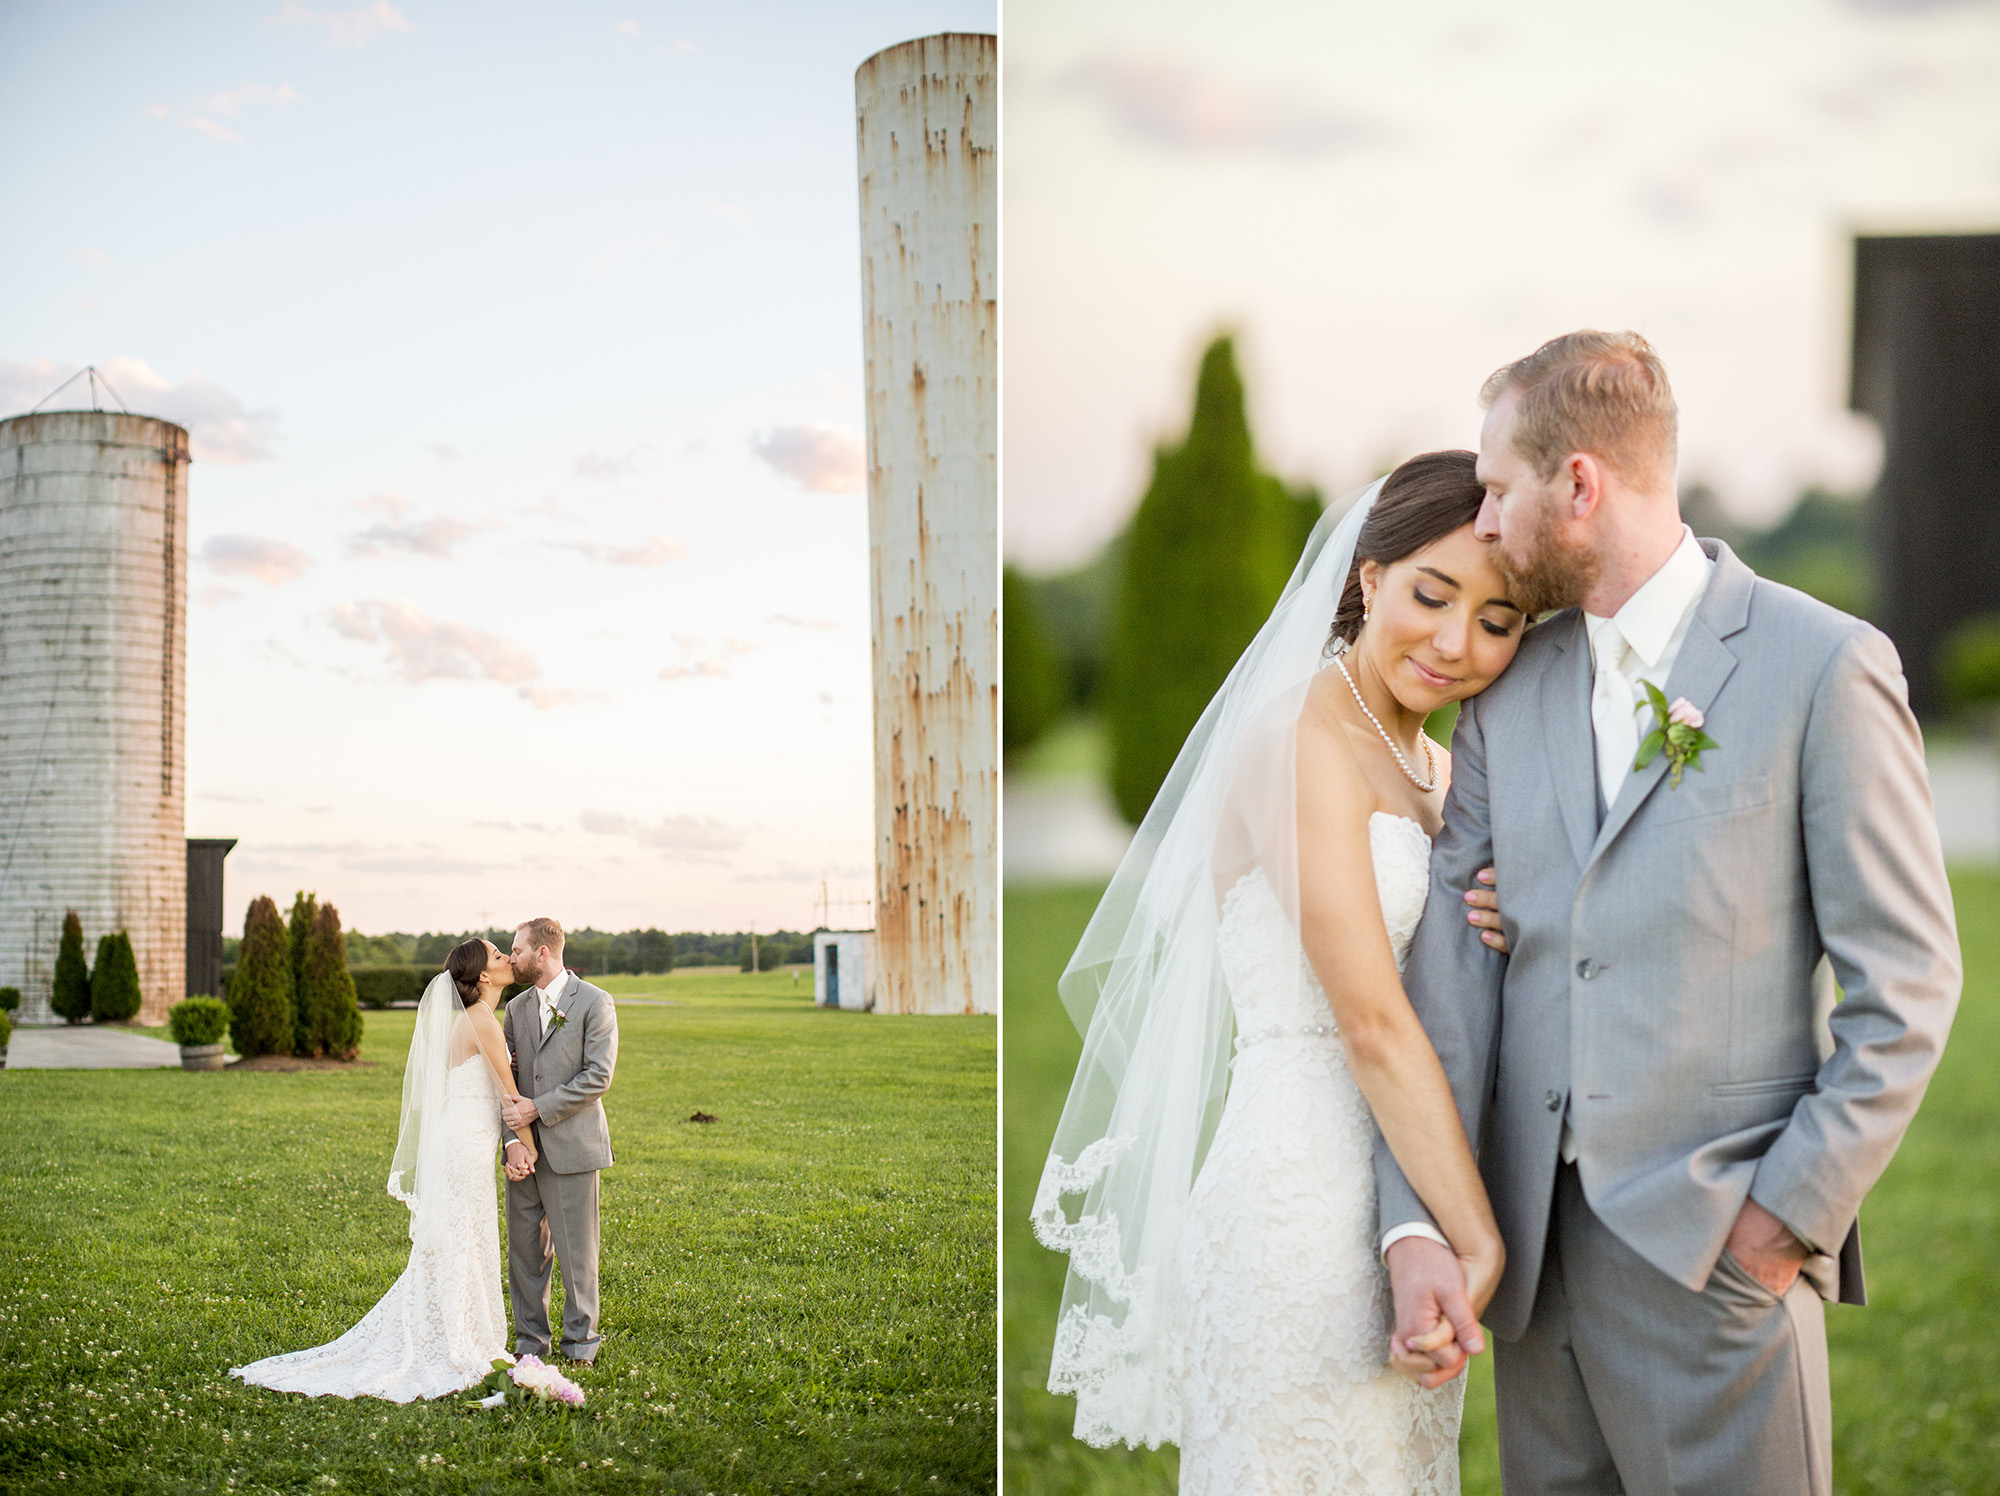 Seriously_Sabrina_Photography_Lexington_Kentucky_Talon_Winery_Wedding_Kjellsen170.jpg